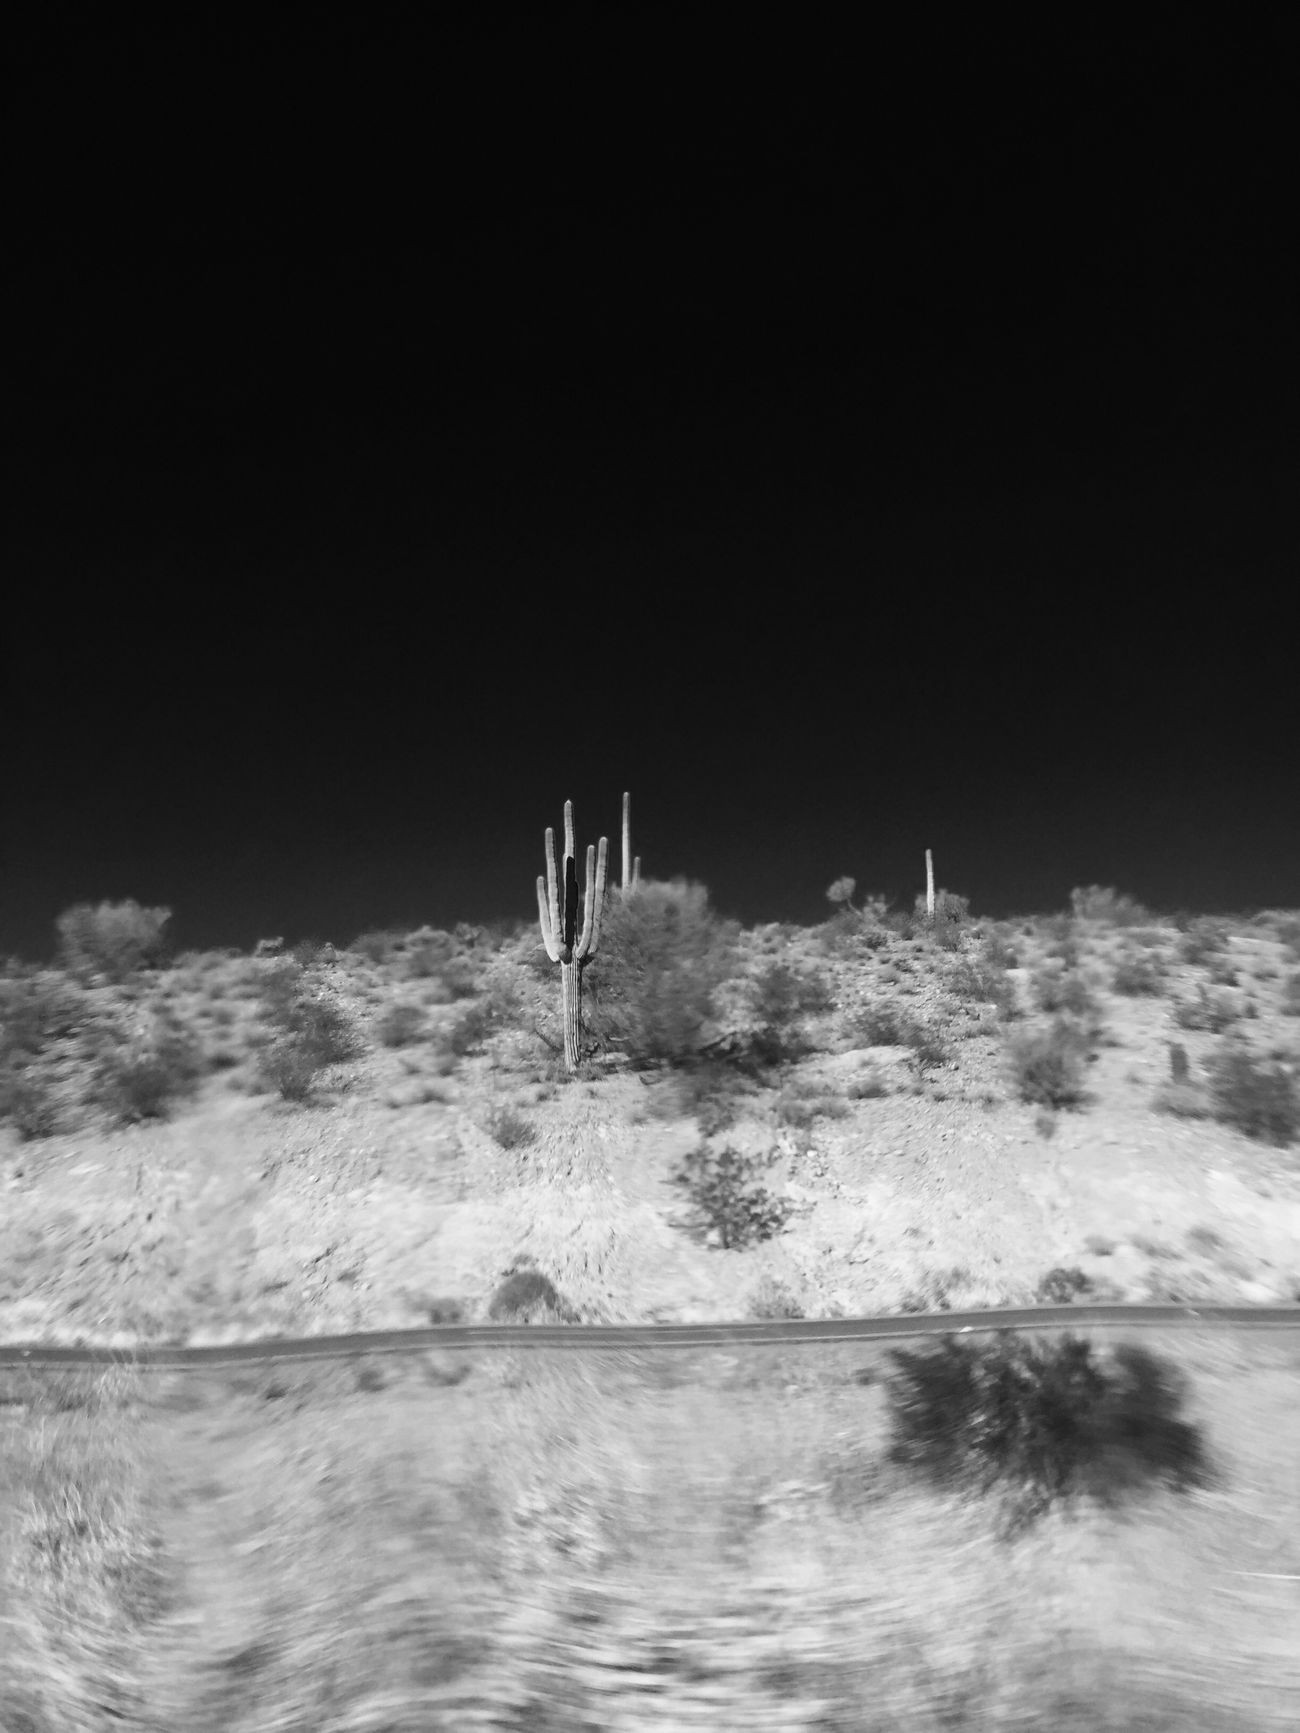 Cactus Blackandwhite Darksky Cacti Desert Tumbleweeds Movingtarget Movingpicture Contrast Blackandwhite Nature Dry Earth High Desert